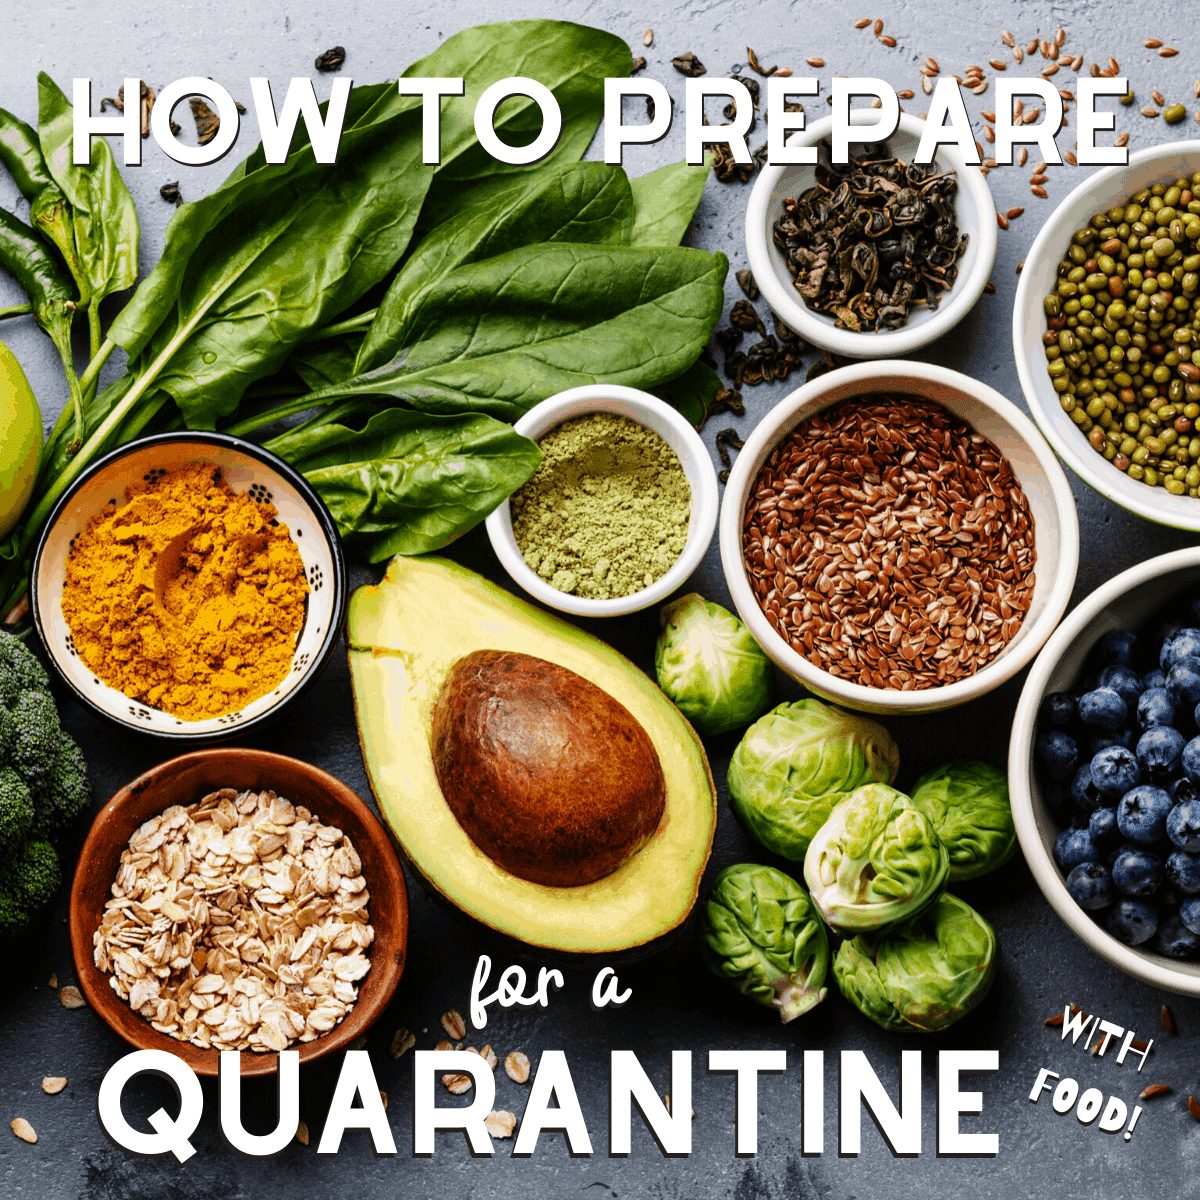 How to Prepare for a Quarantine with Food